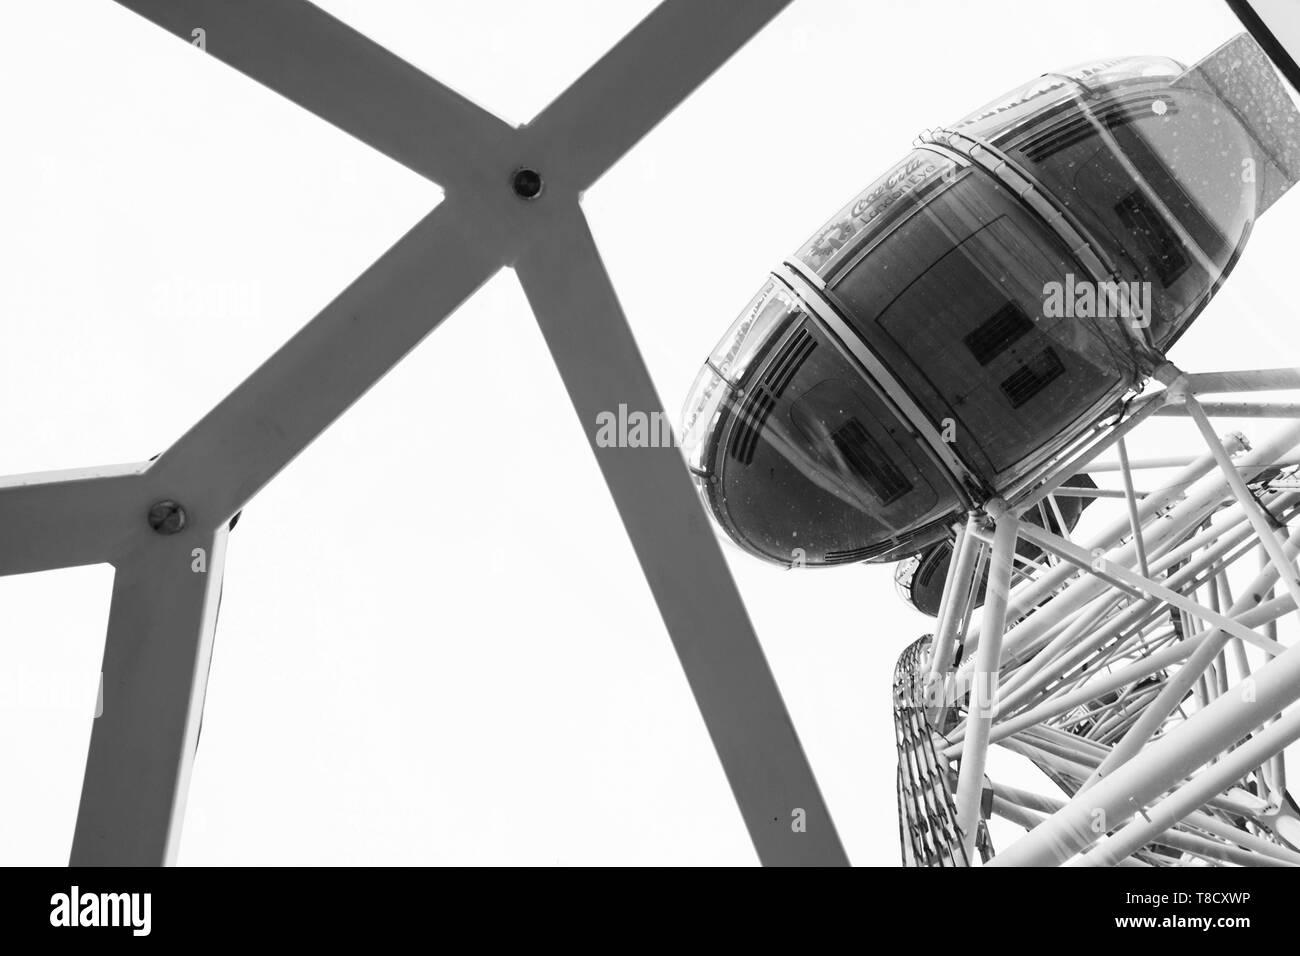 London, United Kingdom - October 31, 2017: Cabin of London Eye giant Ferris wheel mounted on the South Bank of River Thames in London, black and white - Stock Image